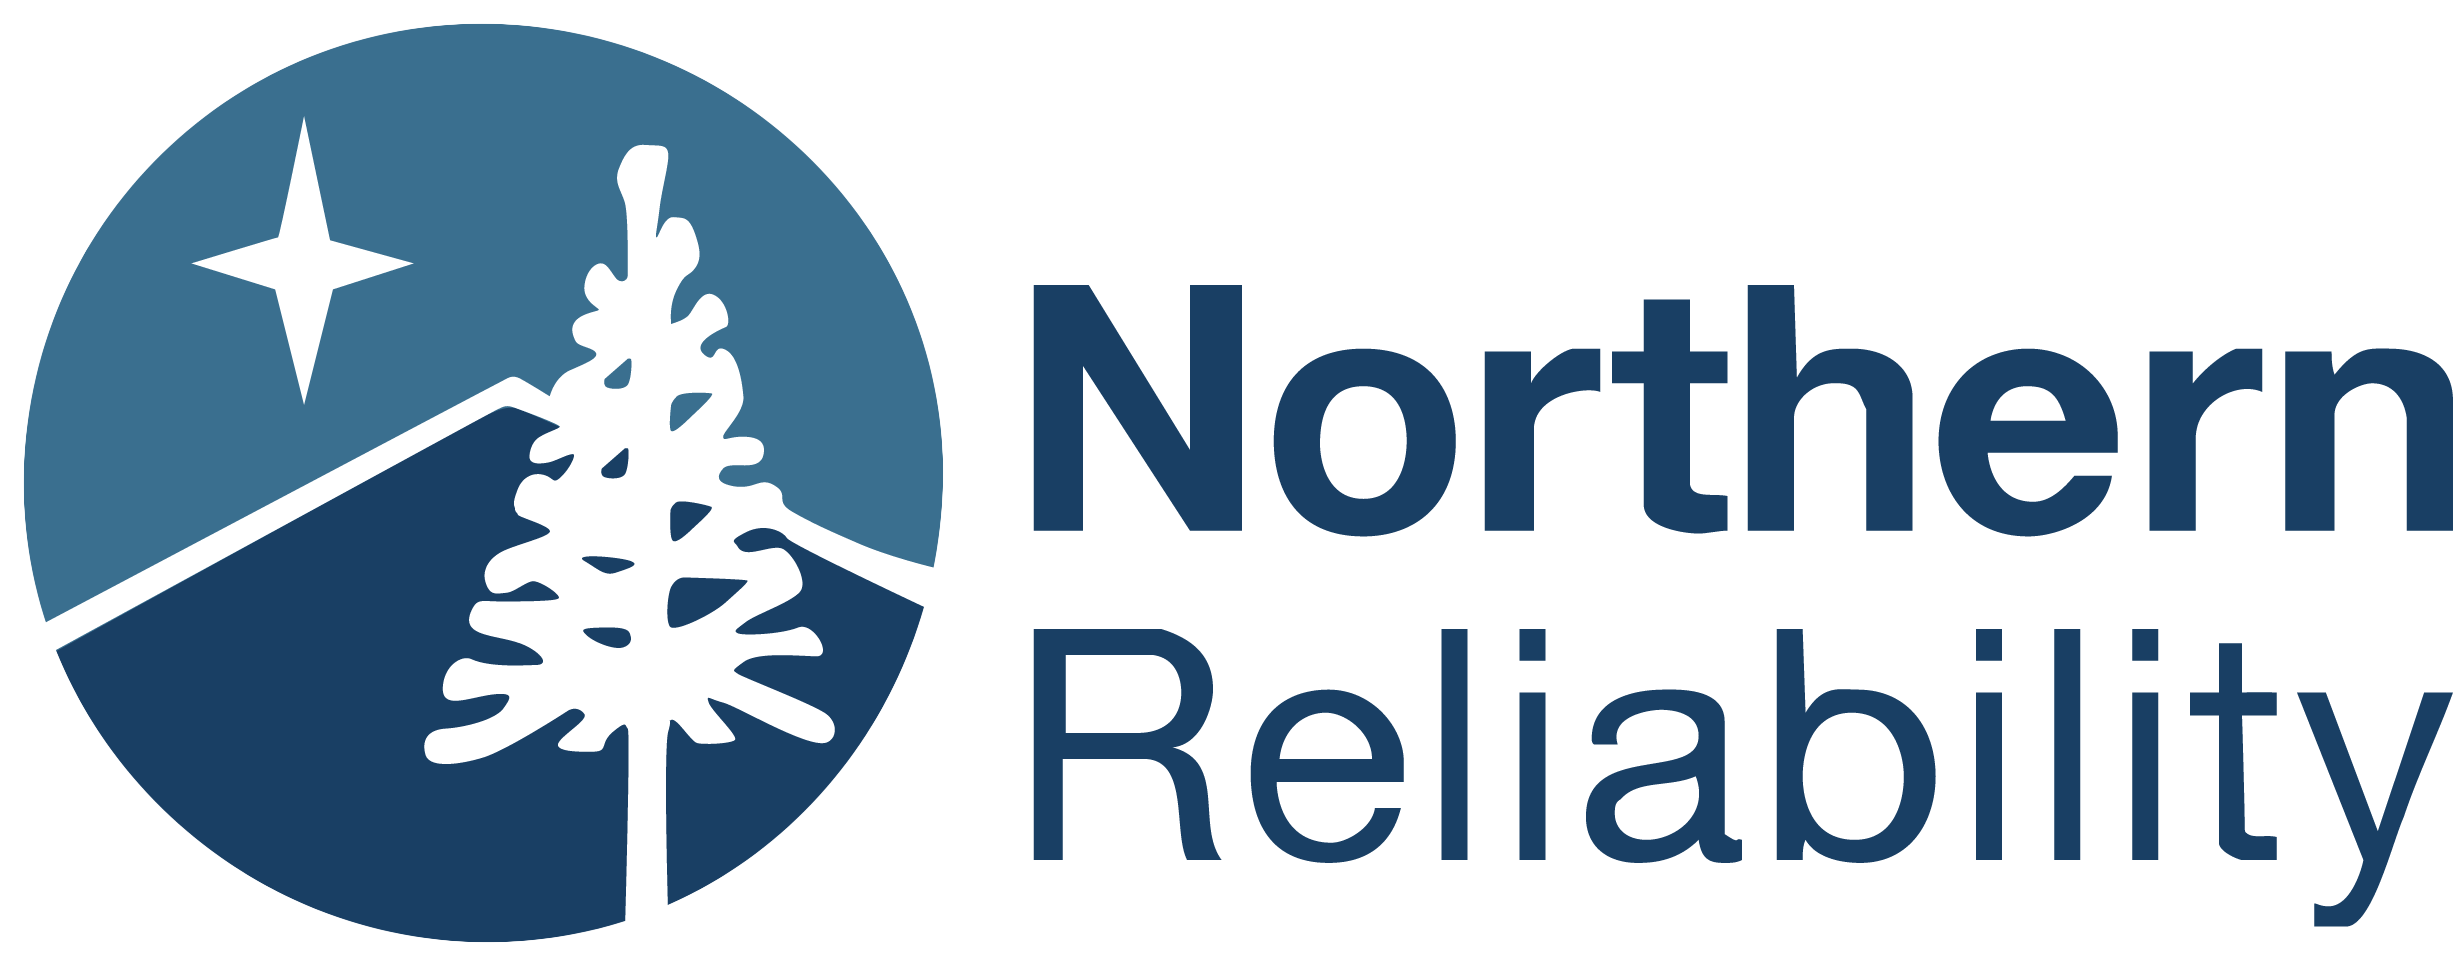 Northern Reliability, Inc.